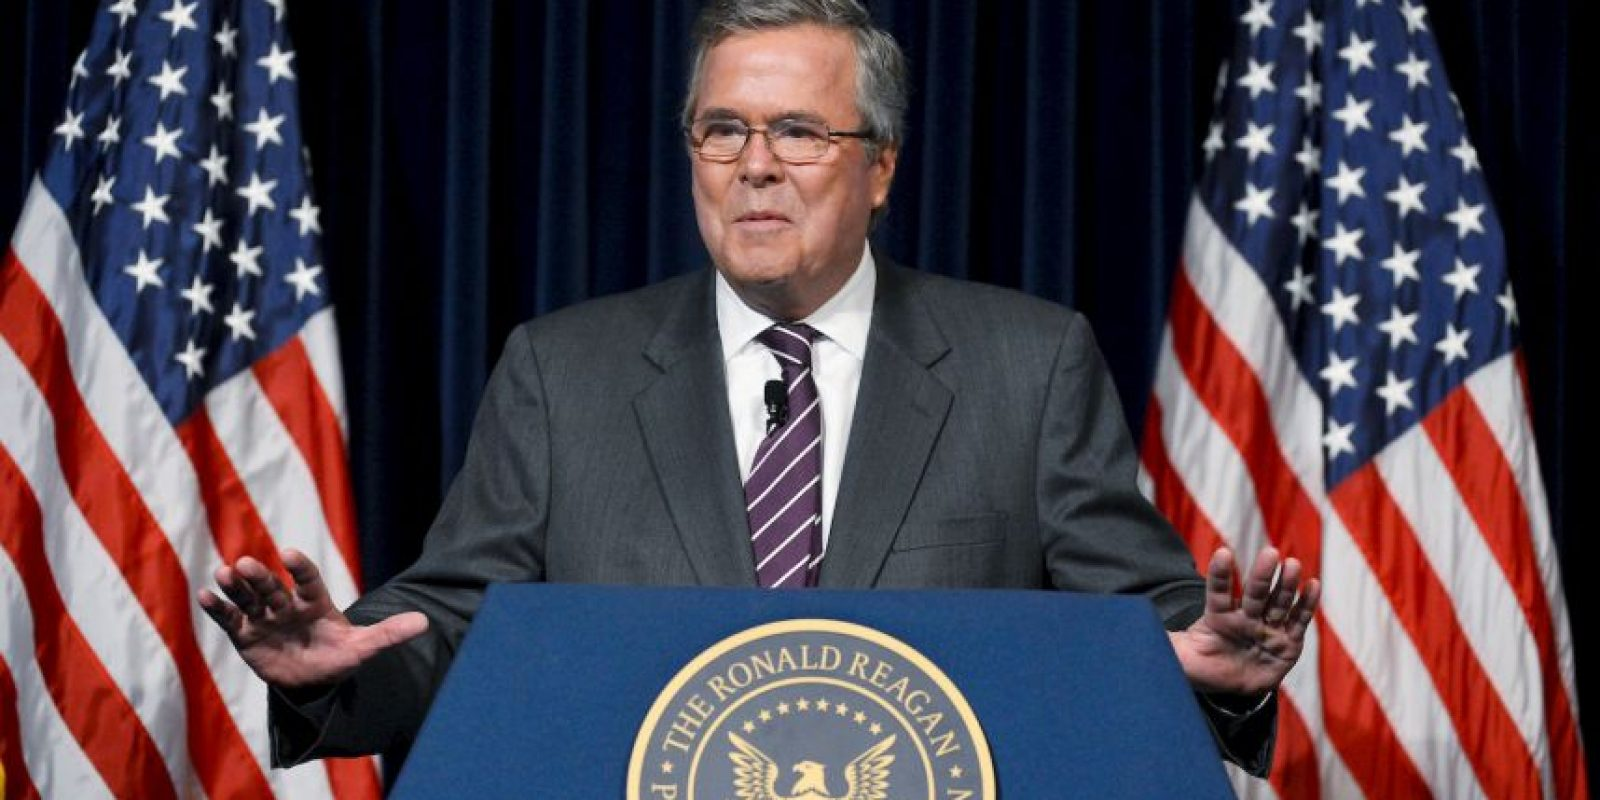 3. Jeb Bush Foto: Getty Images